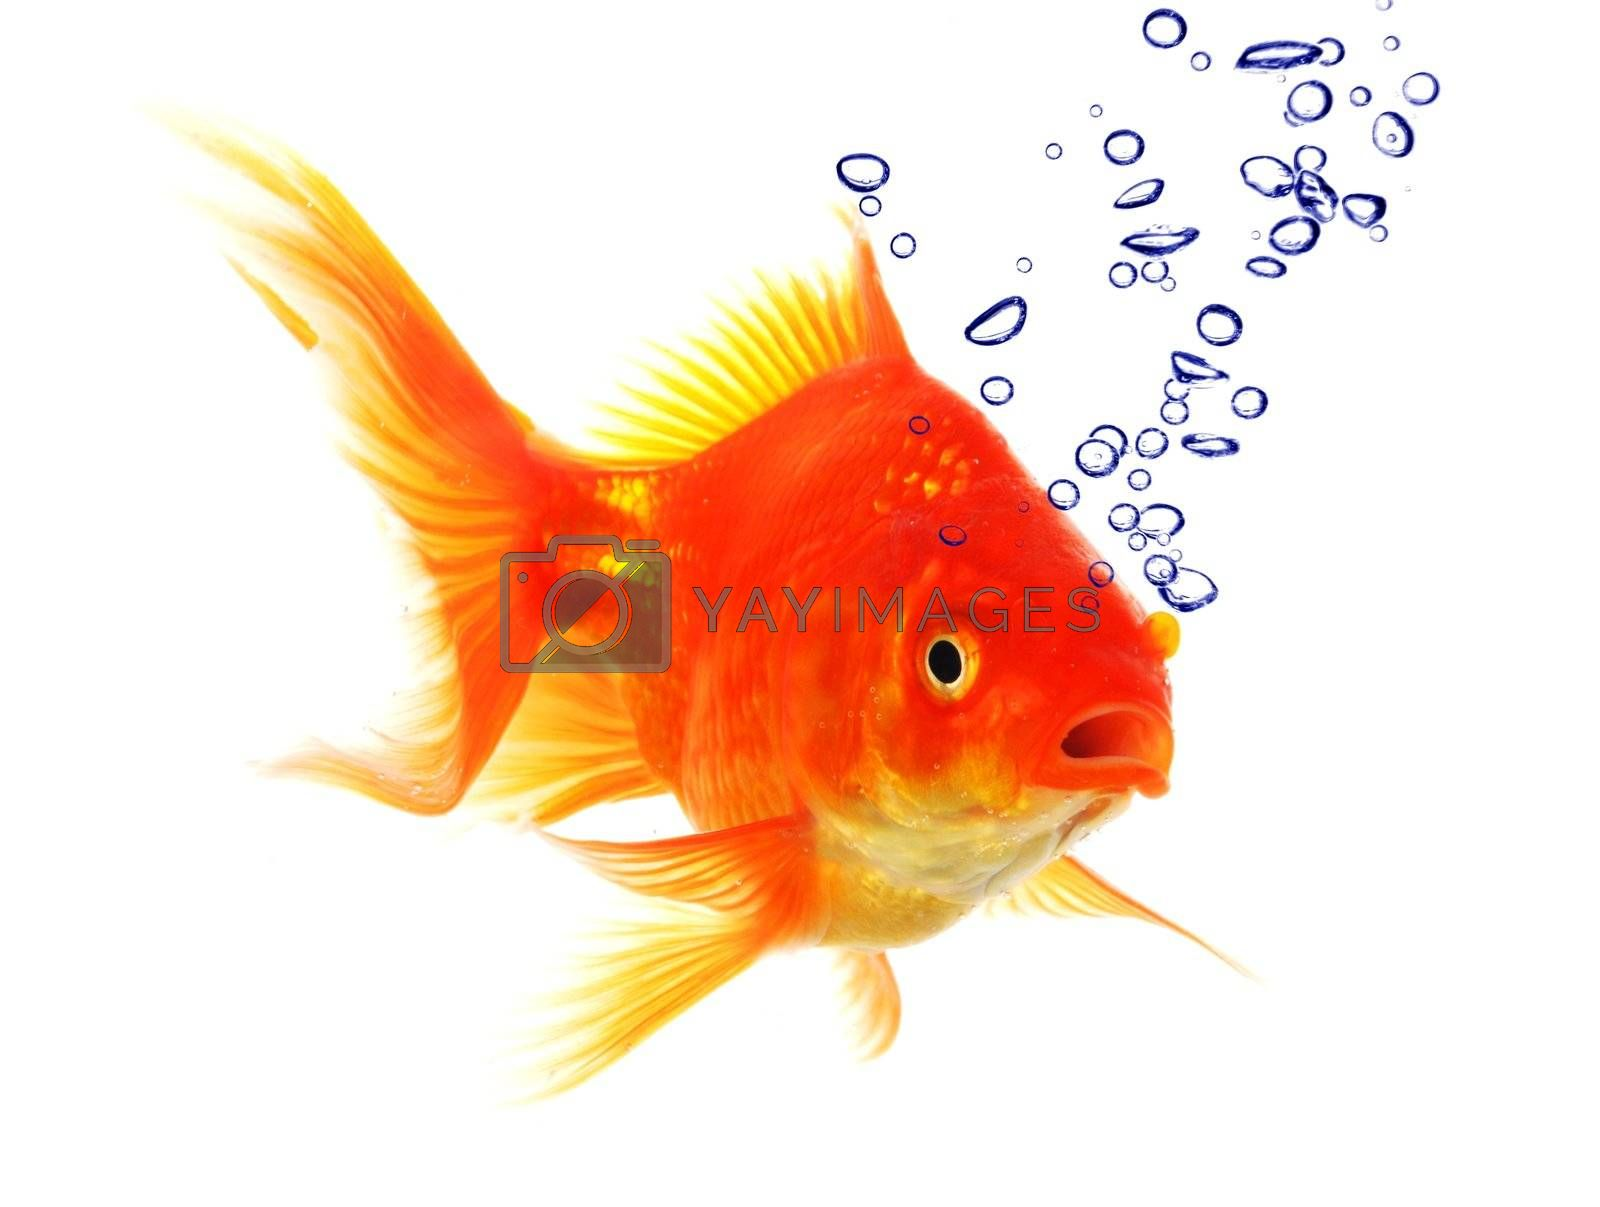 Royalty free image of goldfish and bubbles by gunnar3000